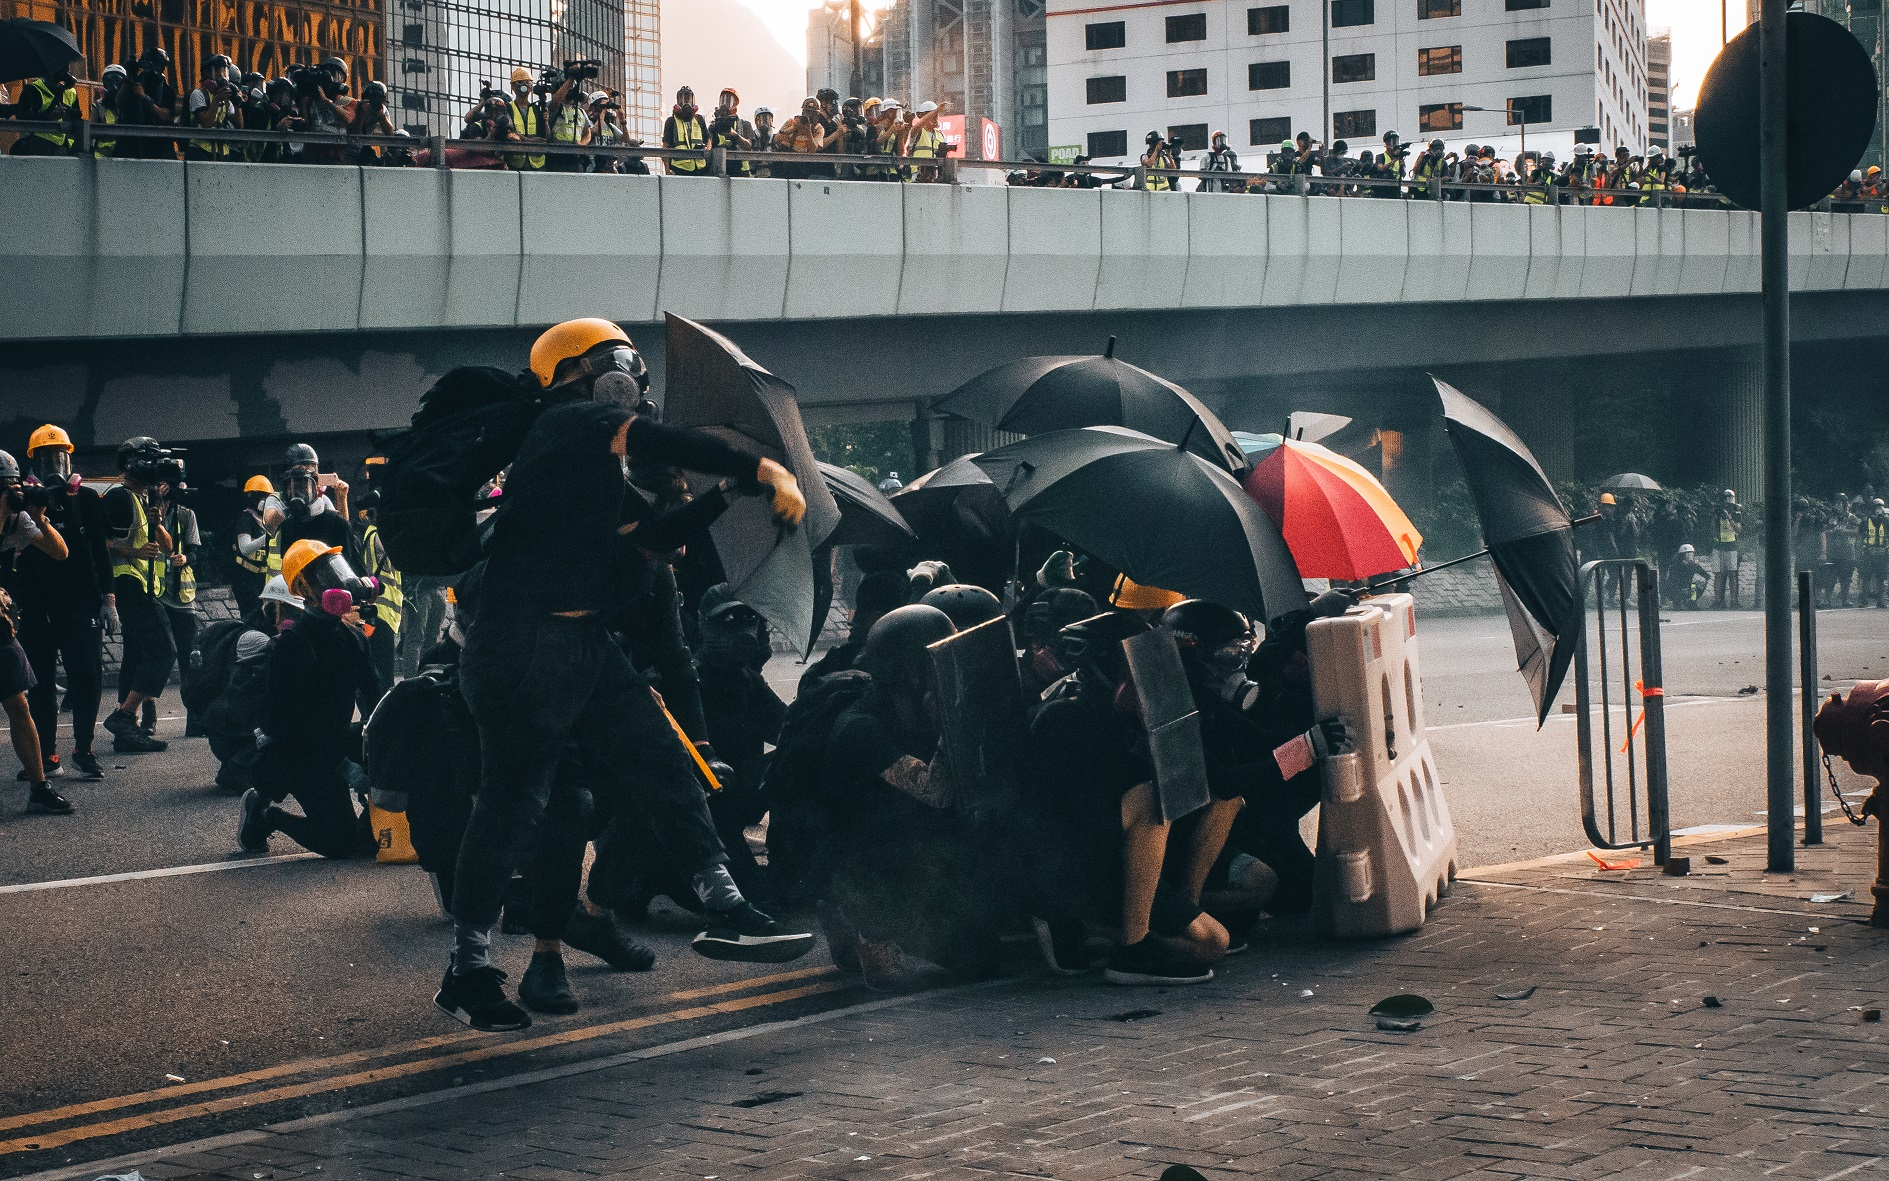 A group of protesters using umbrellas to form a shield in Central, Hong Kong